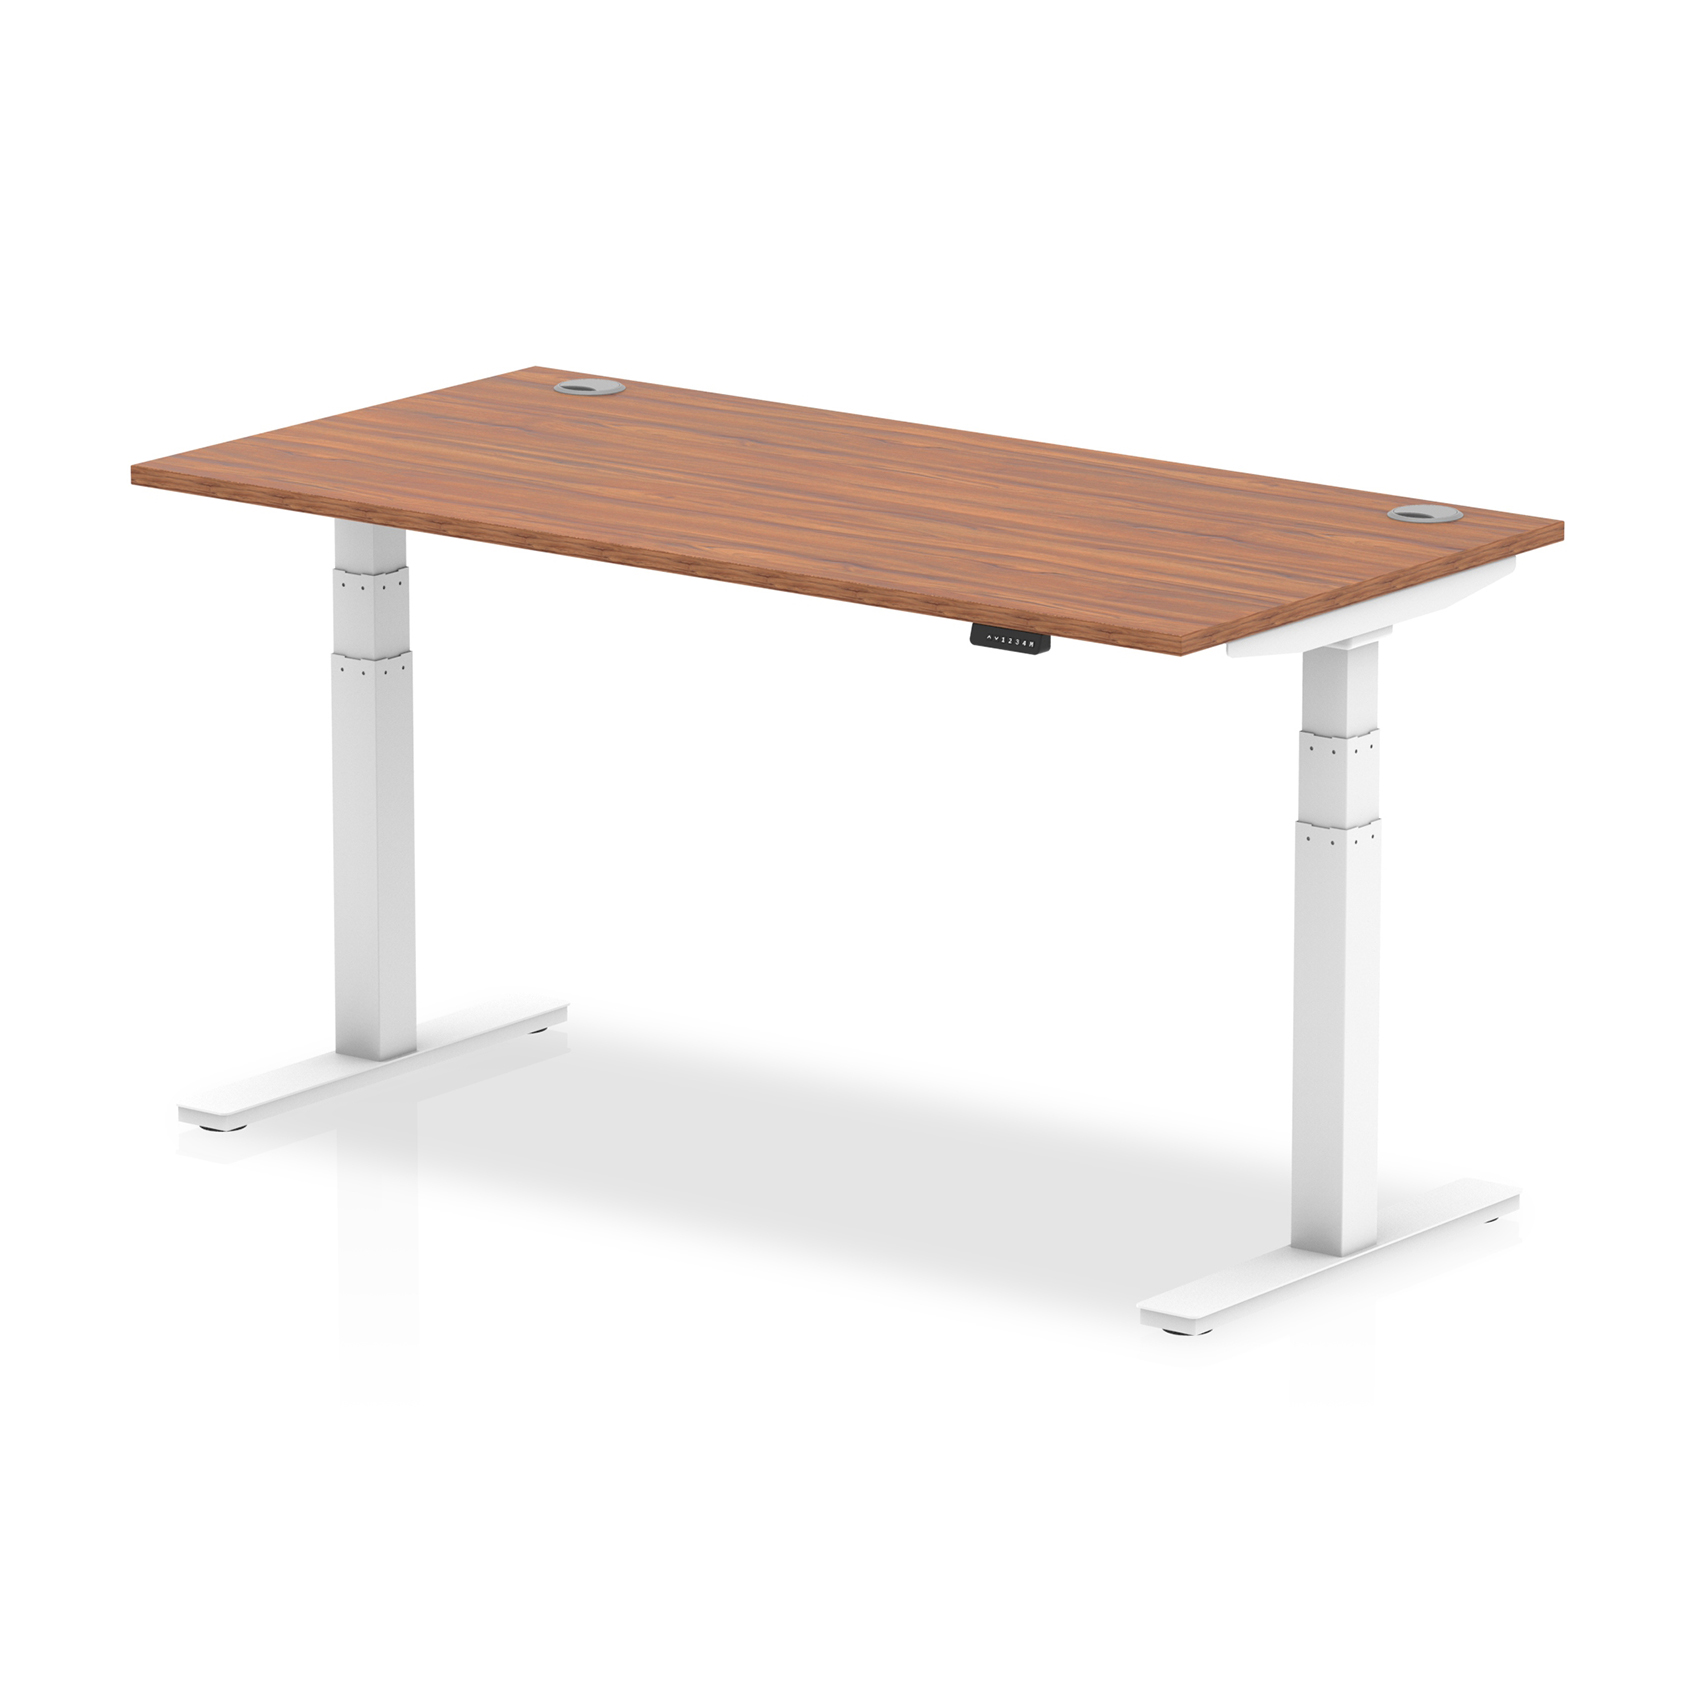 Trexus Sit Stand Desk With Cable Ports White Legs 1600x800mm Walnut Ref HA01107